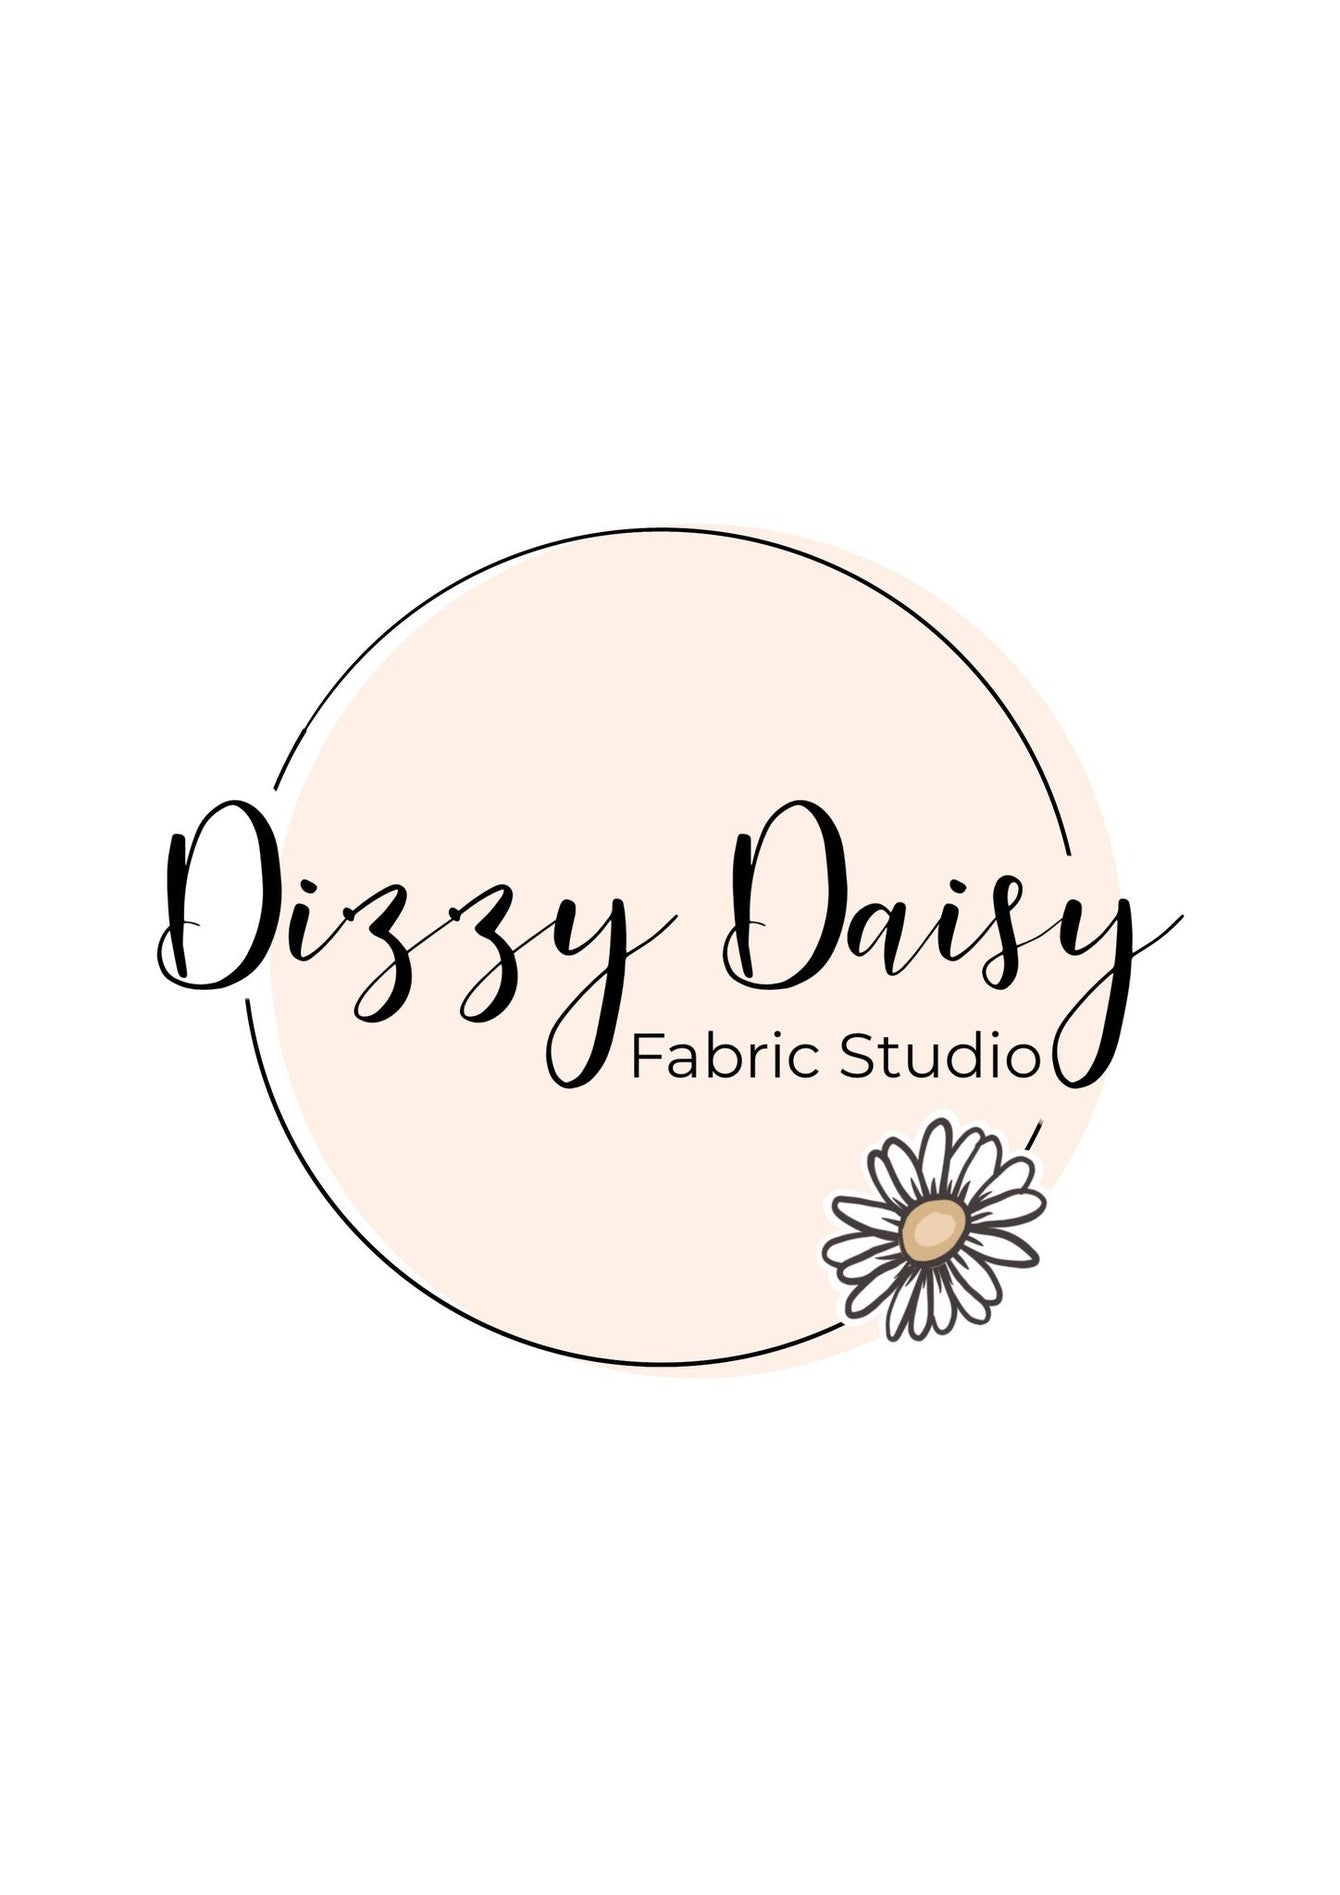 Dizzy Daisy Fabric Studio